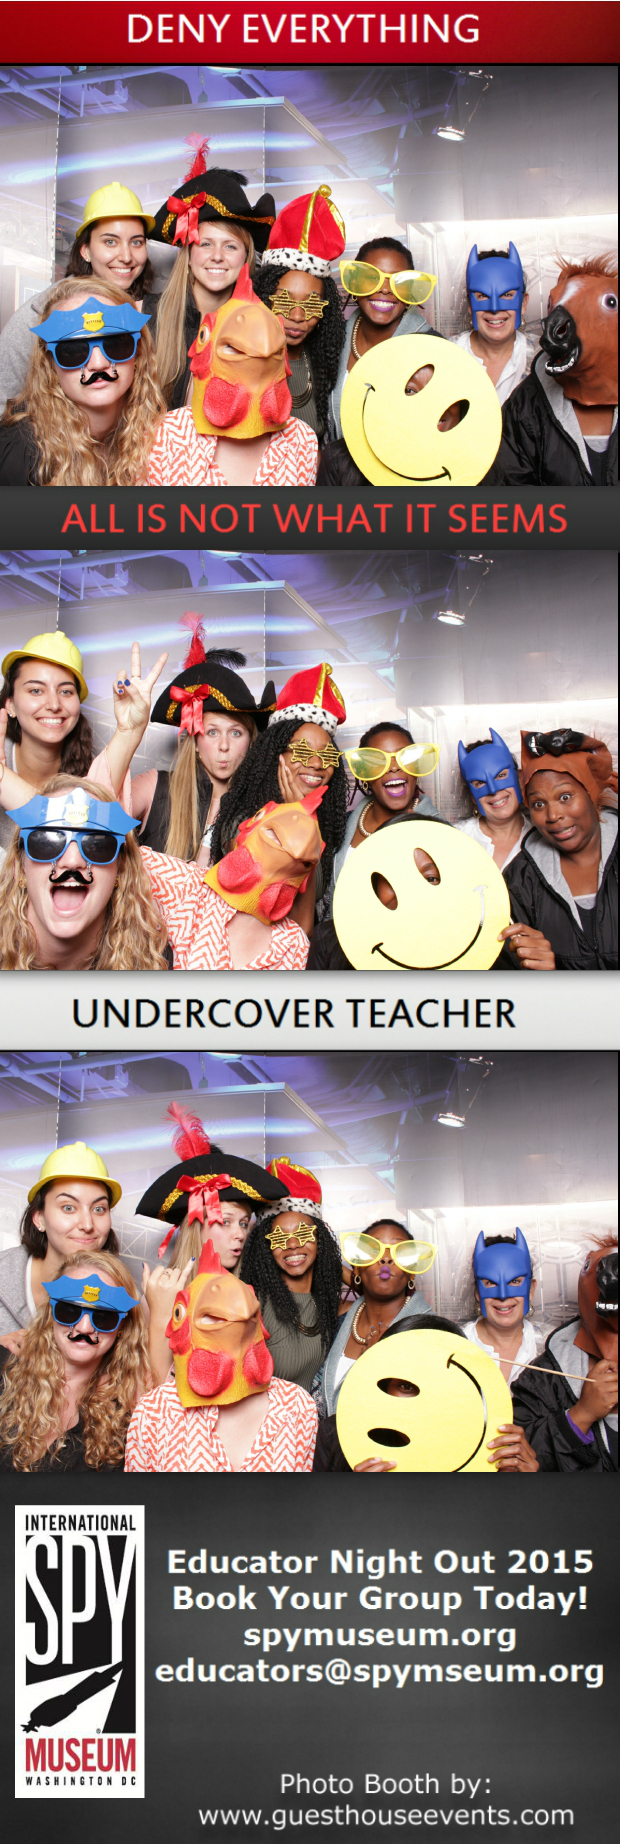 Guest House Events Photo Booth Spy Museum Educator Night Out (79).jpg